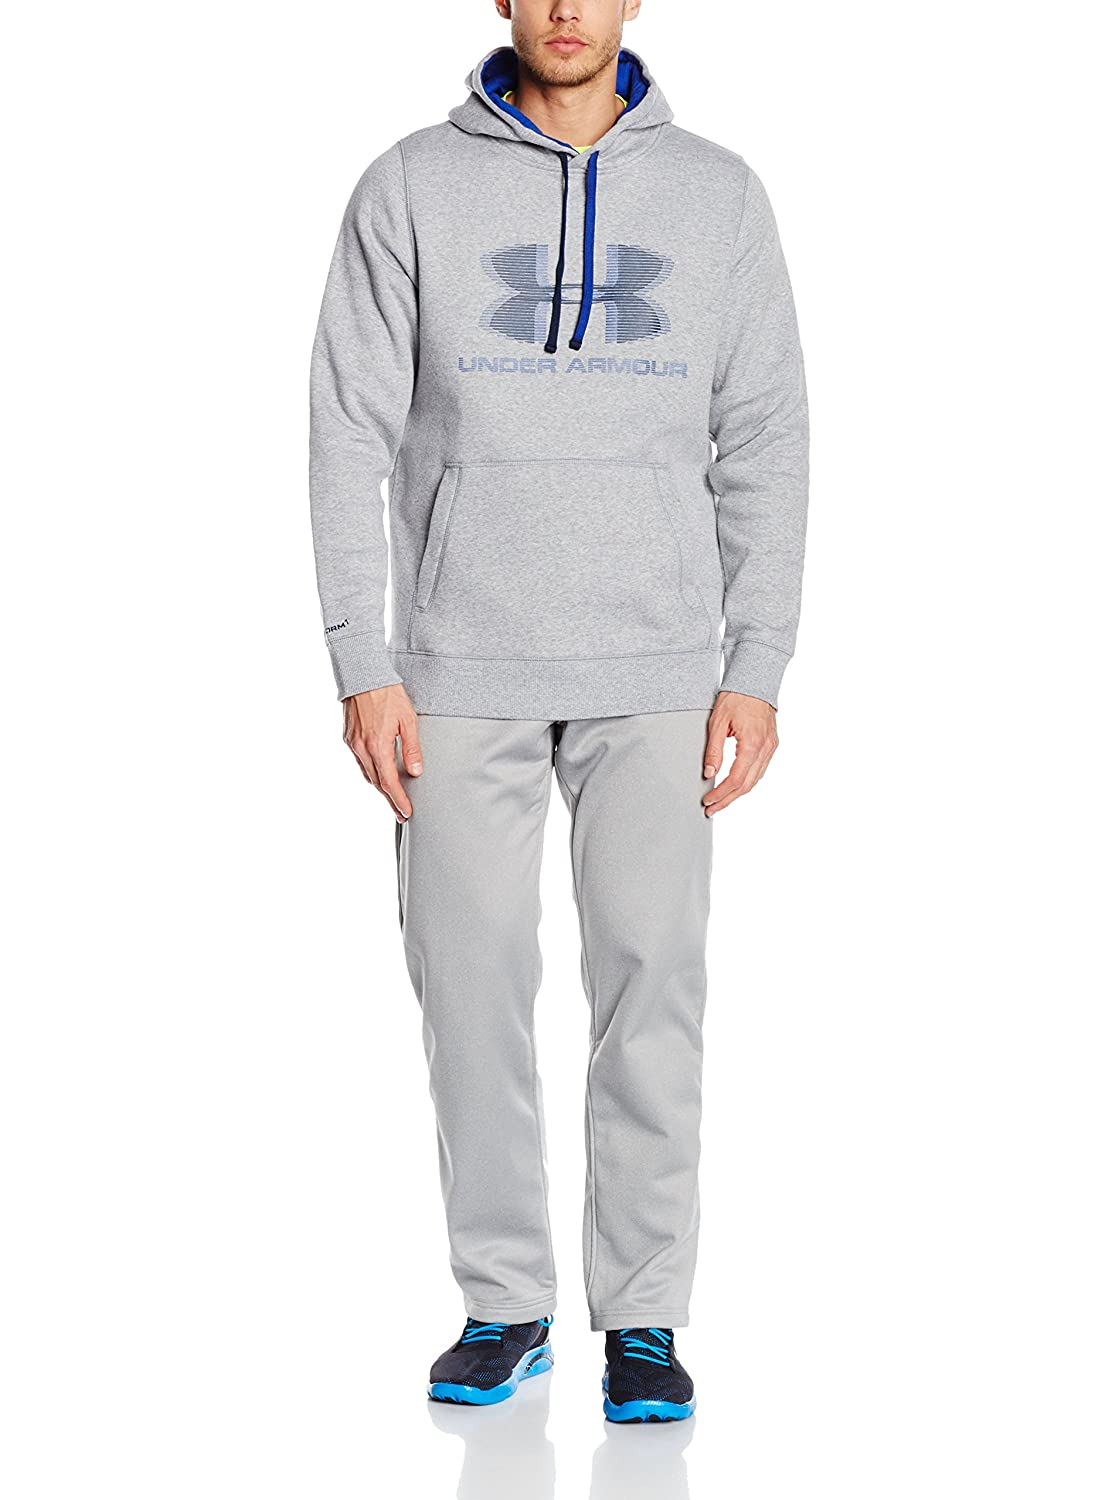 Under Armour Sudadera con Capucha Storm Rival Graphic Po Gris 3XL: Amazon.es: Ropa y accesorios